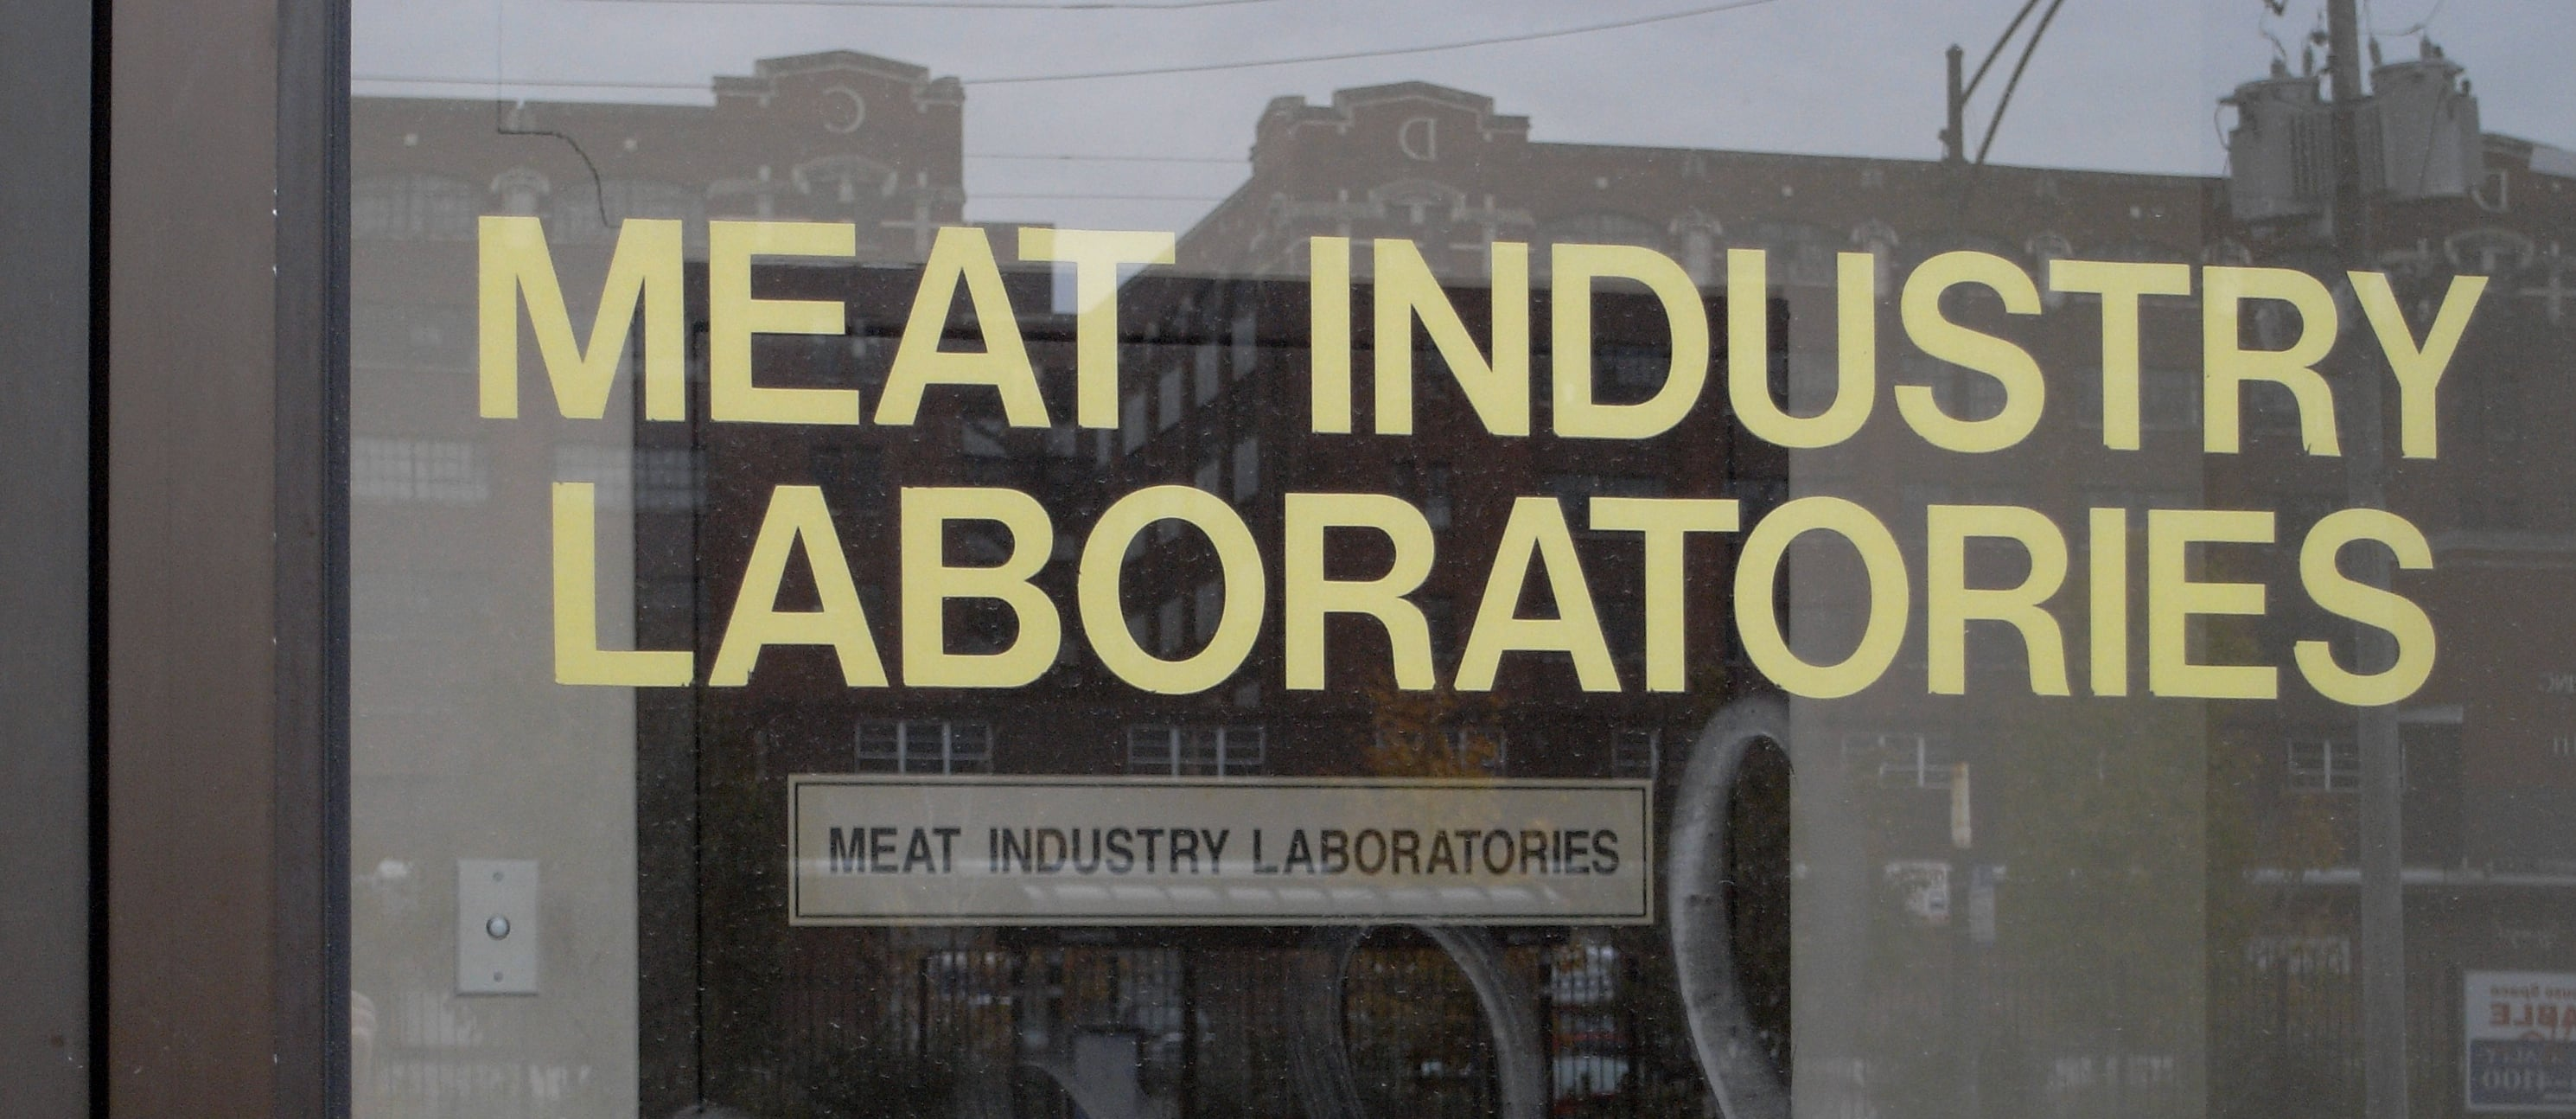 How the Meat Industry Designed a Highly Misleading Study